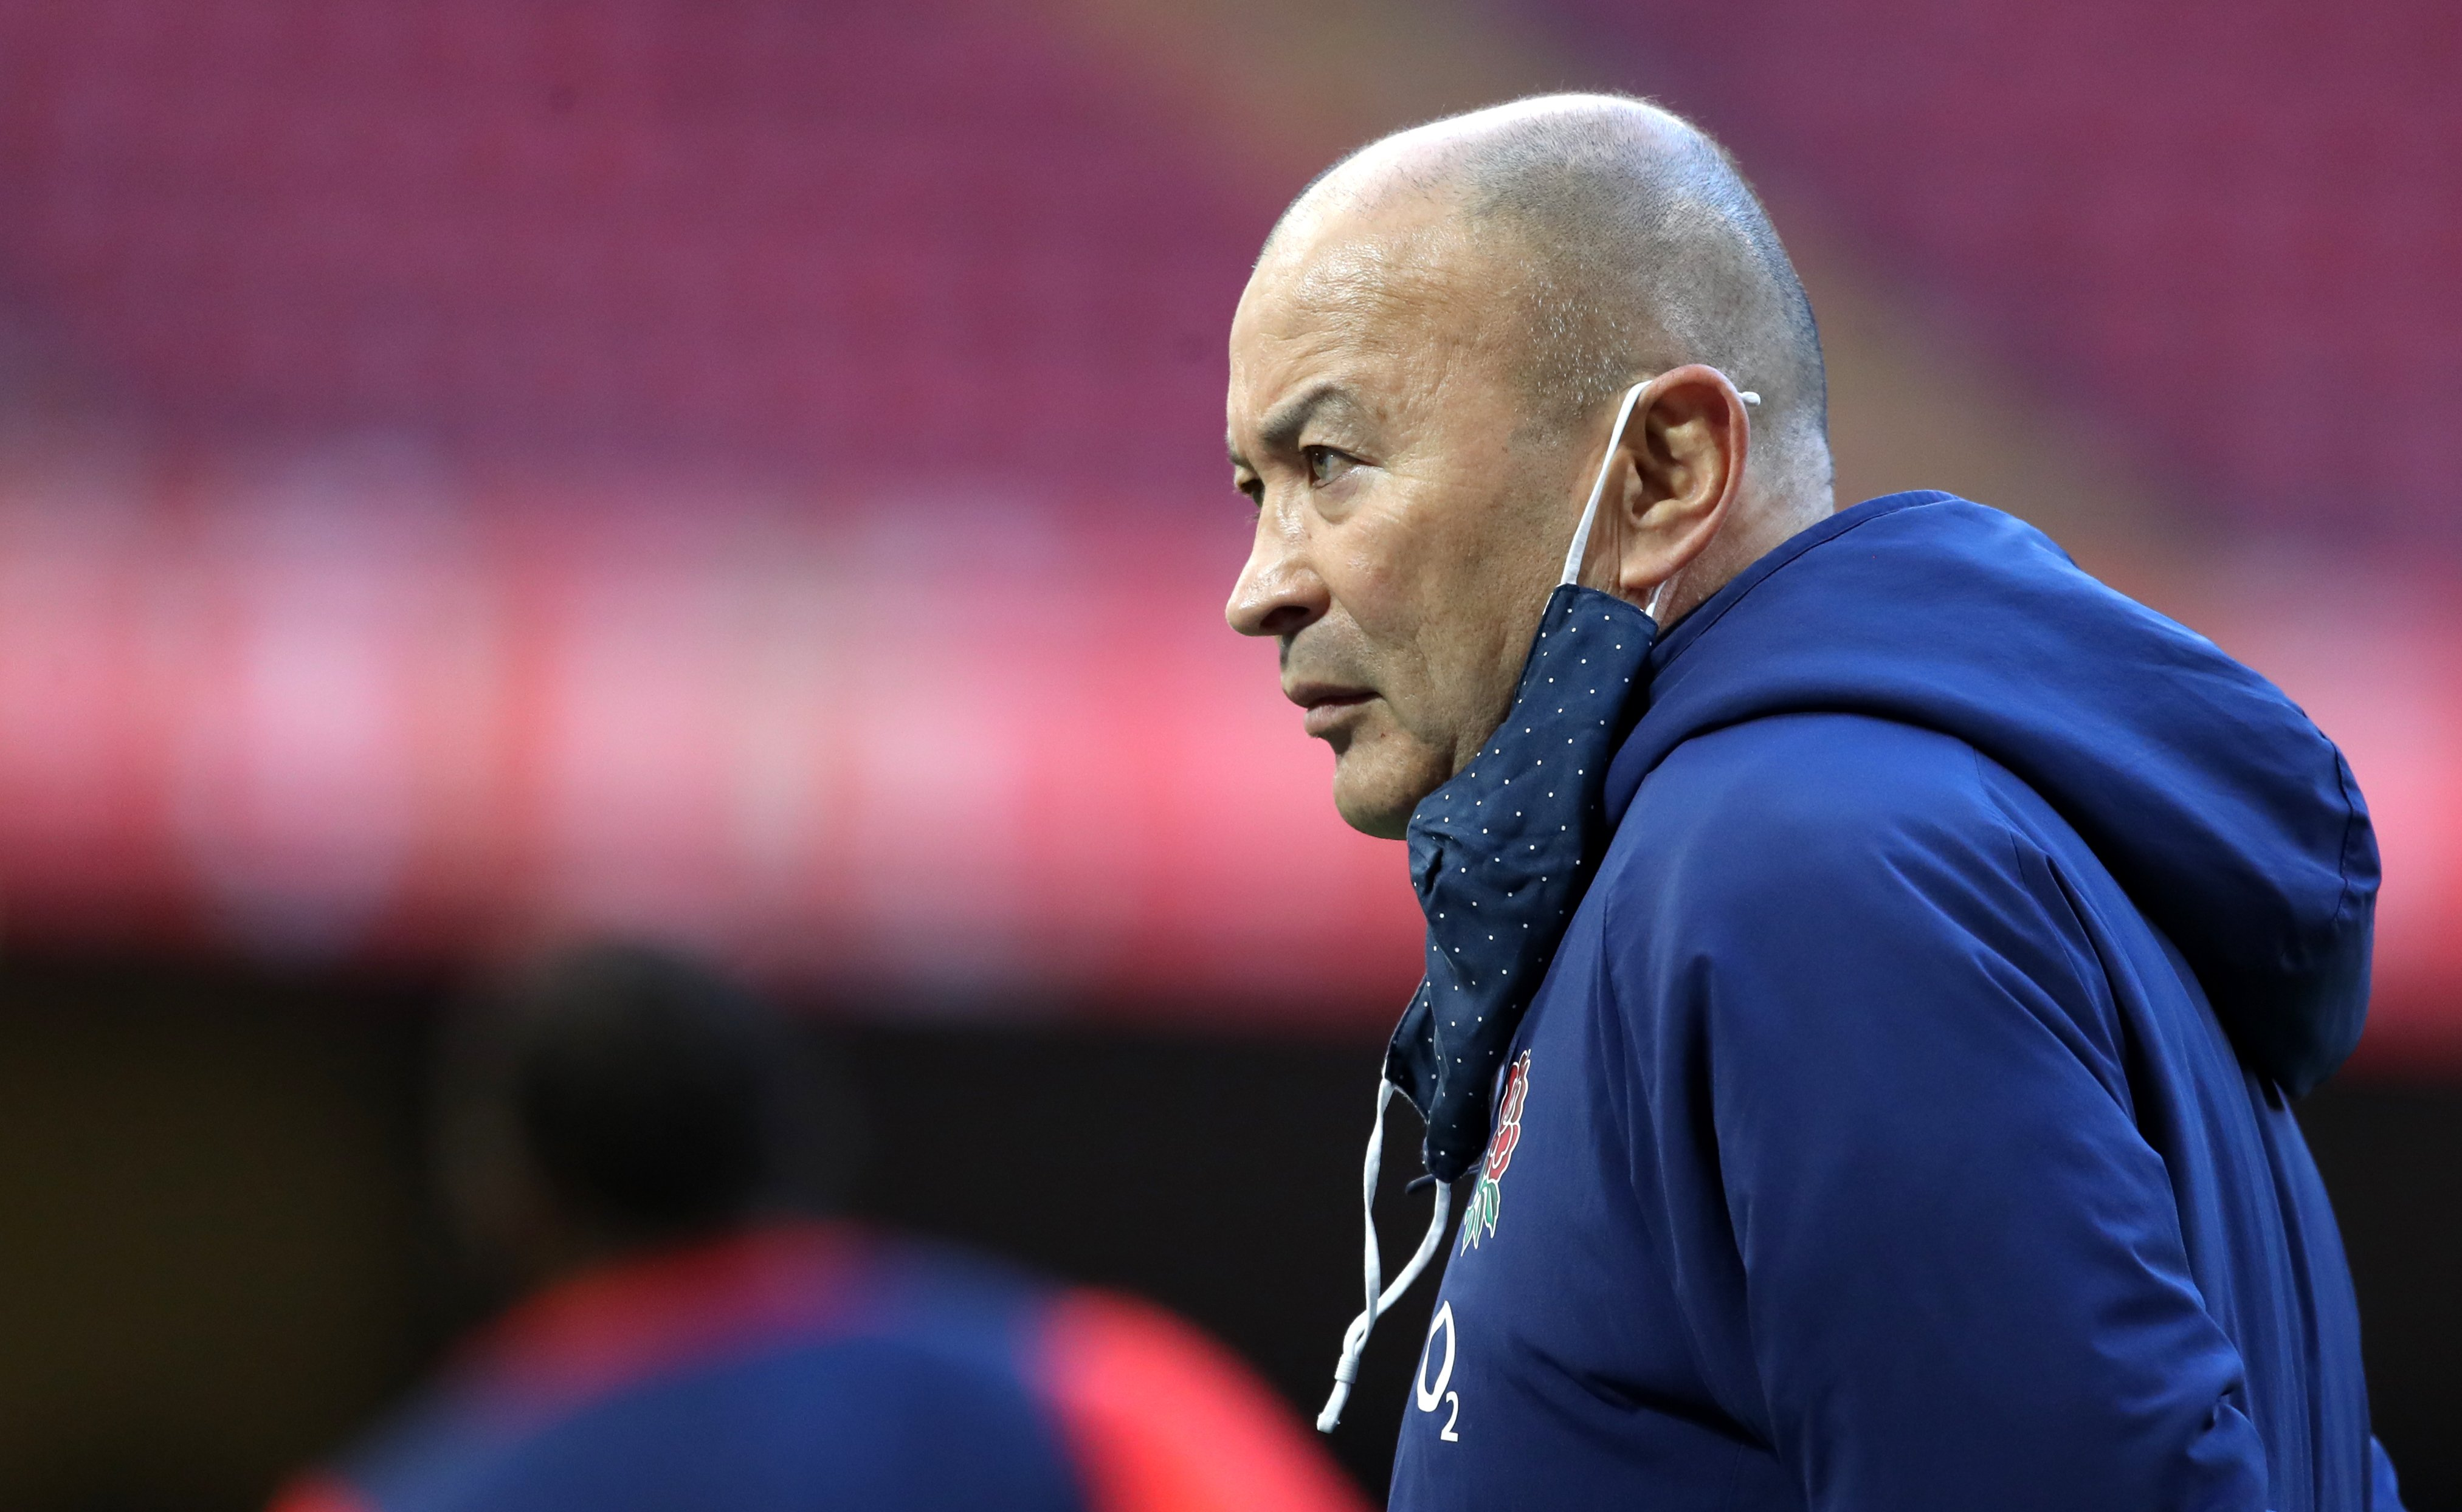 Eddie Jones calls on England to 'stick together and dig in' after loss in Wales